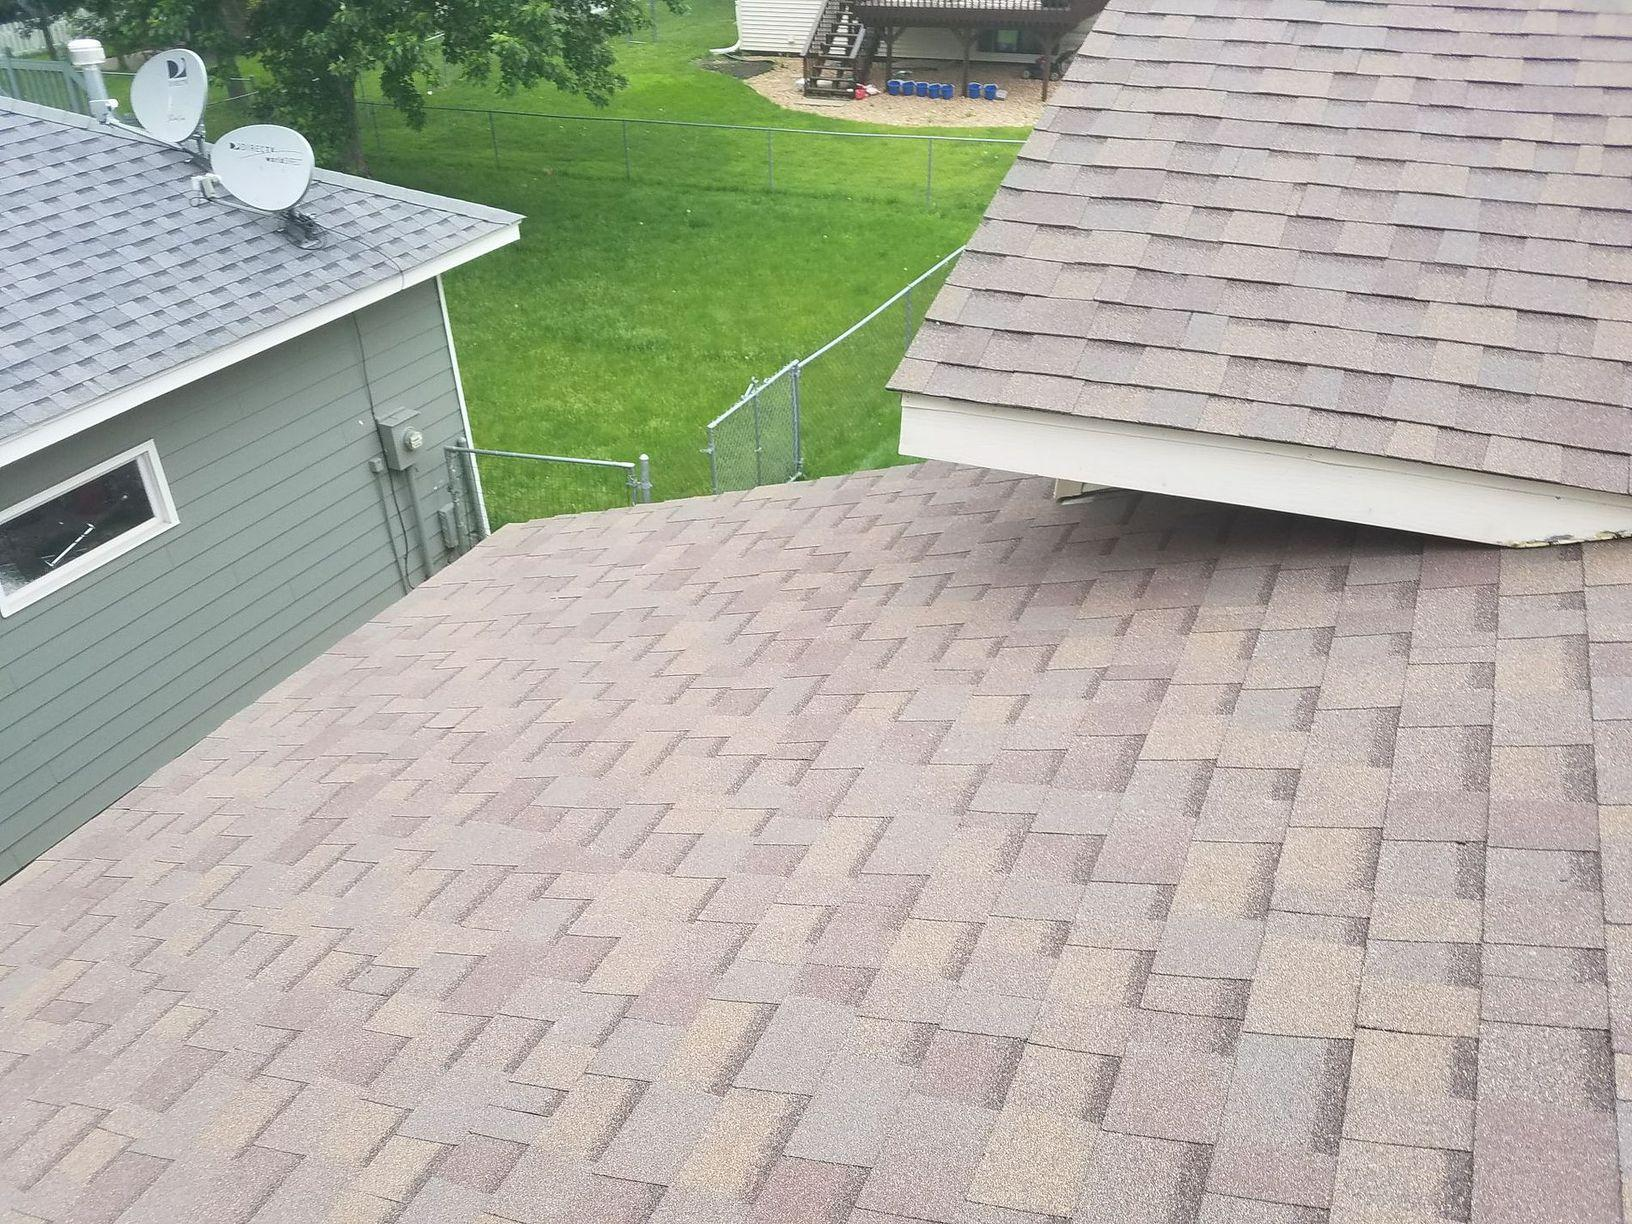 Farmington, MN Roof Replacement - After Photo